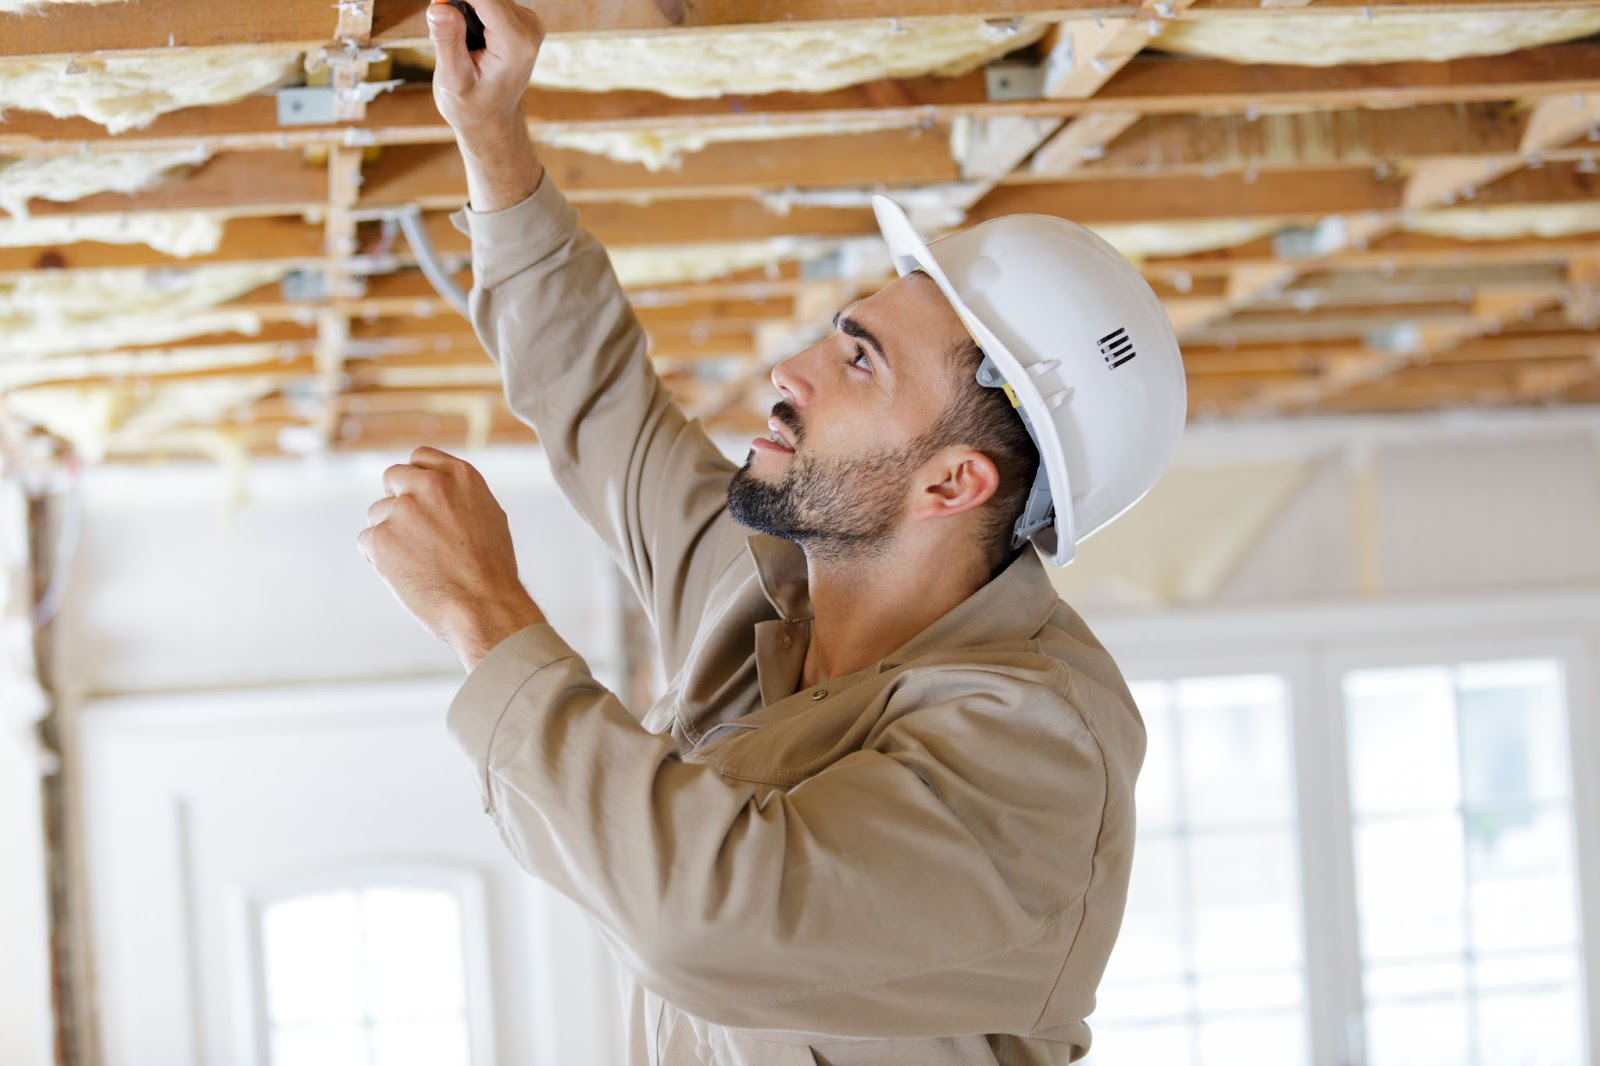 construction worker working on ceiling joist